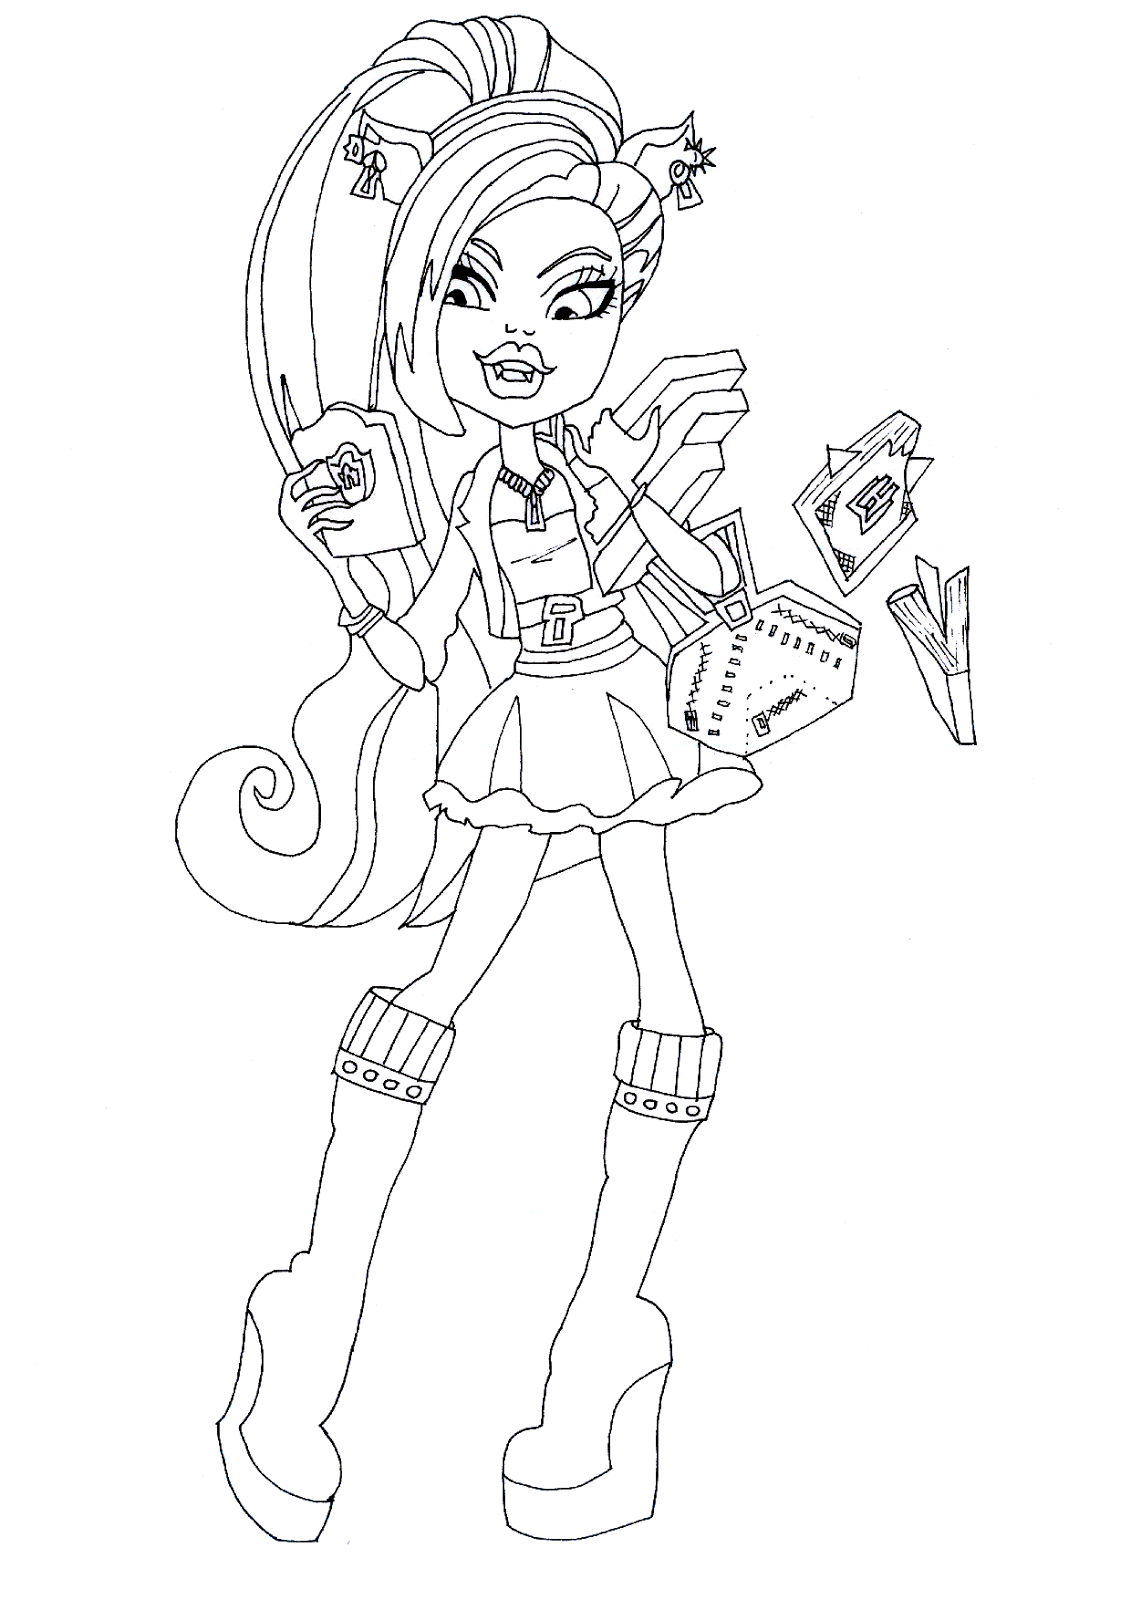 Free Printable Monster High Coloring Pages Clawdeen Wolf Scaremester Coloring Page